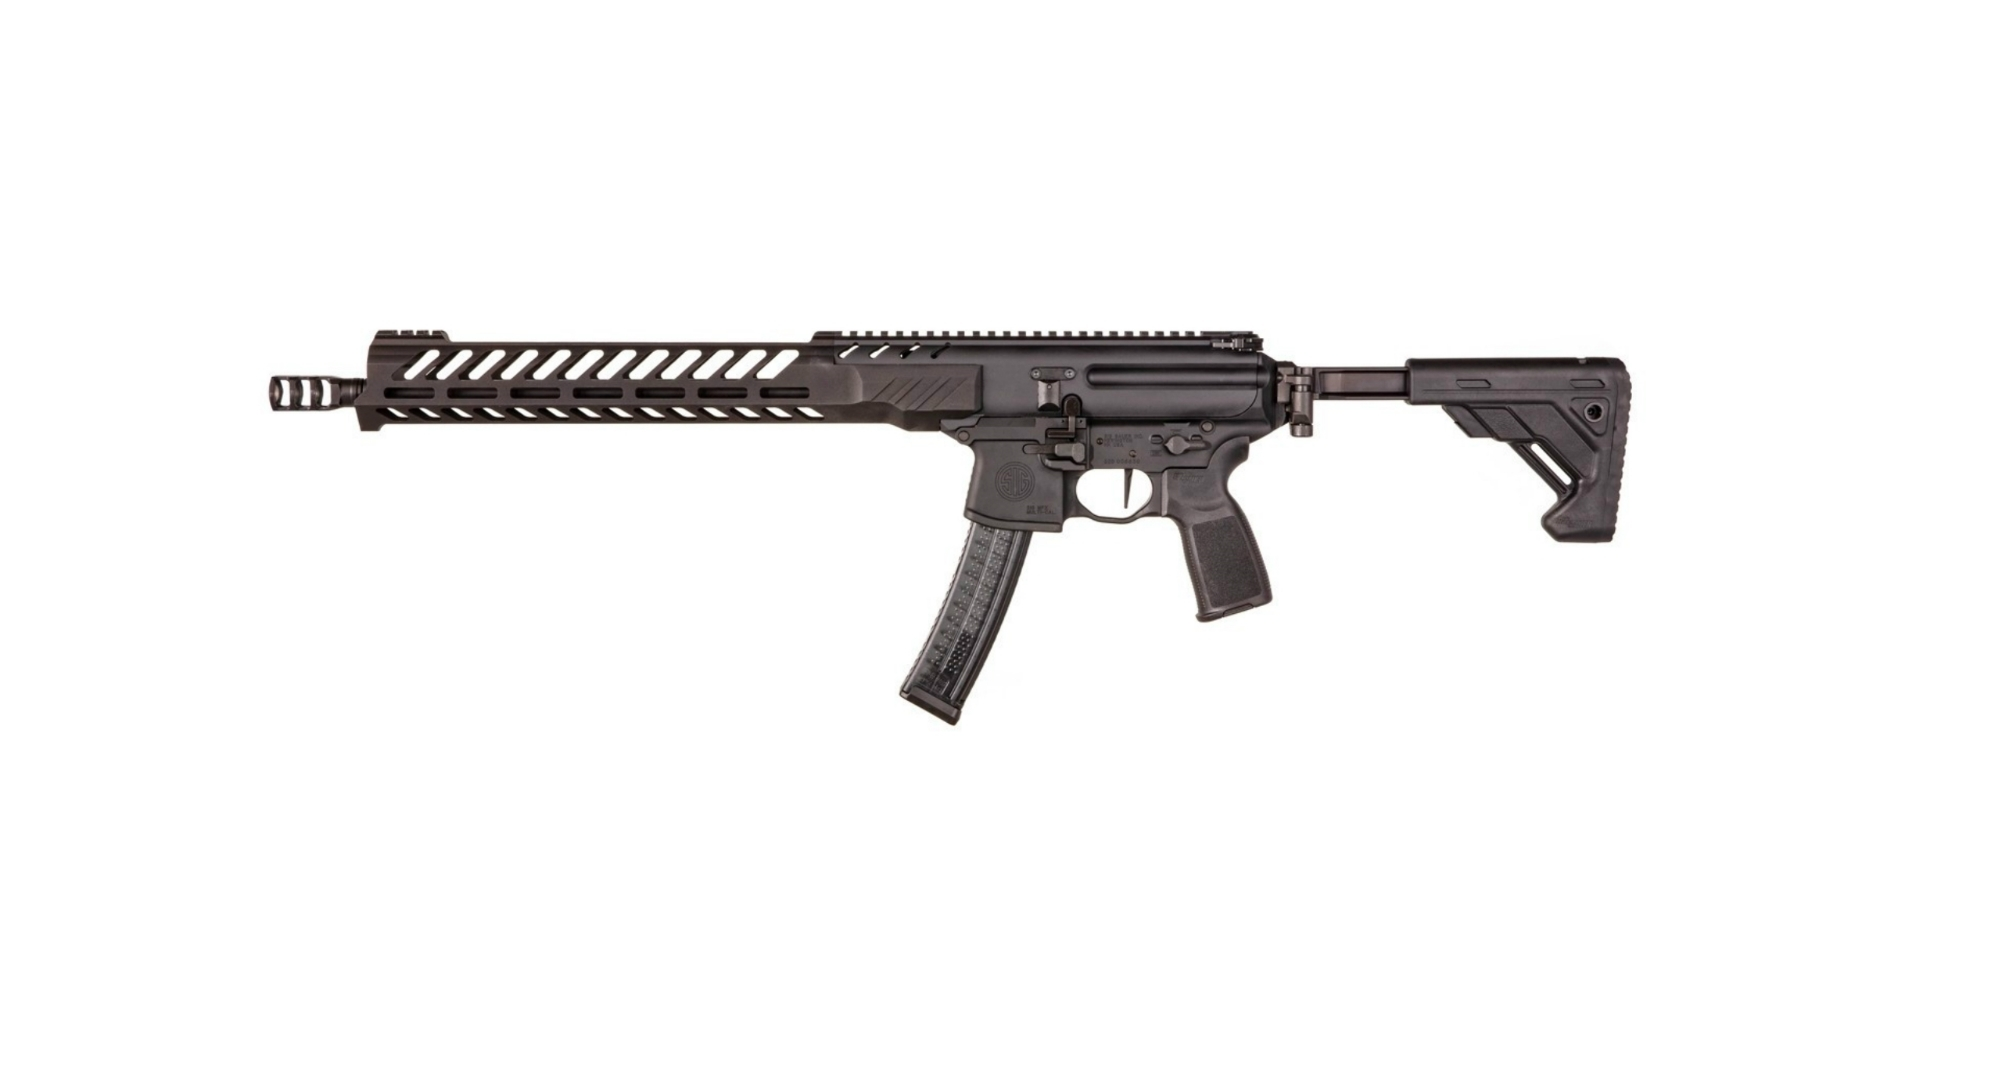 sig-sauer: From SIG Sauer the new and enhanced MPX Pistol Caliber Carbine